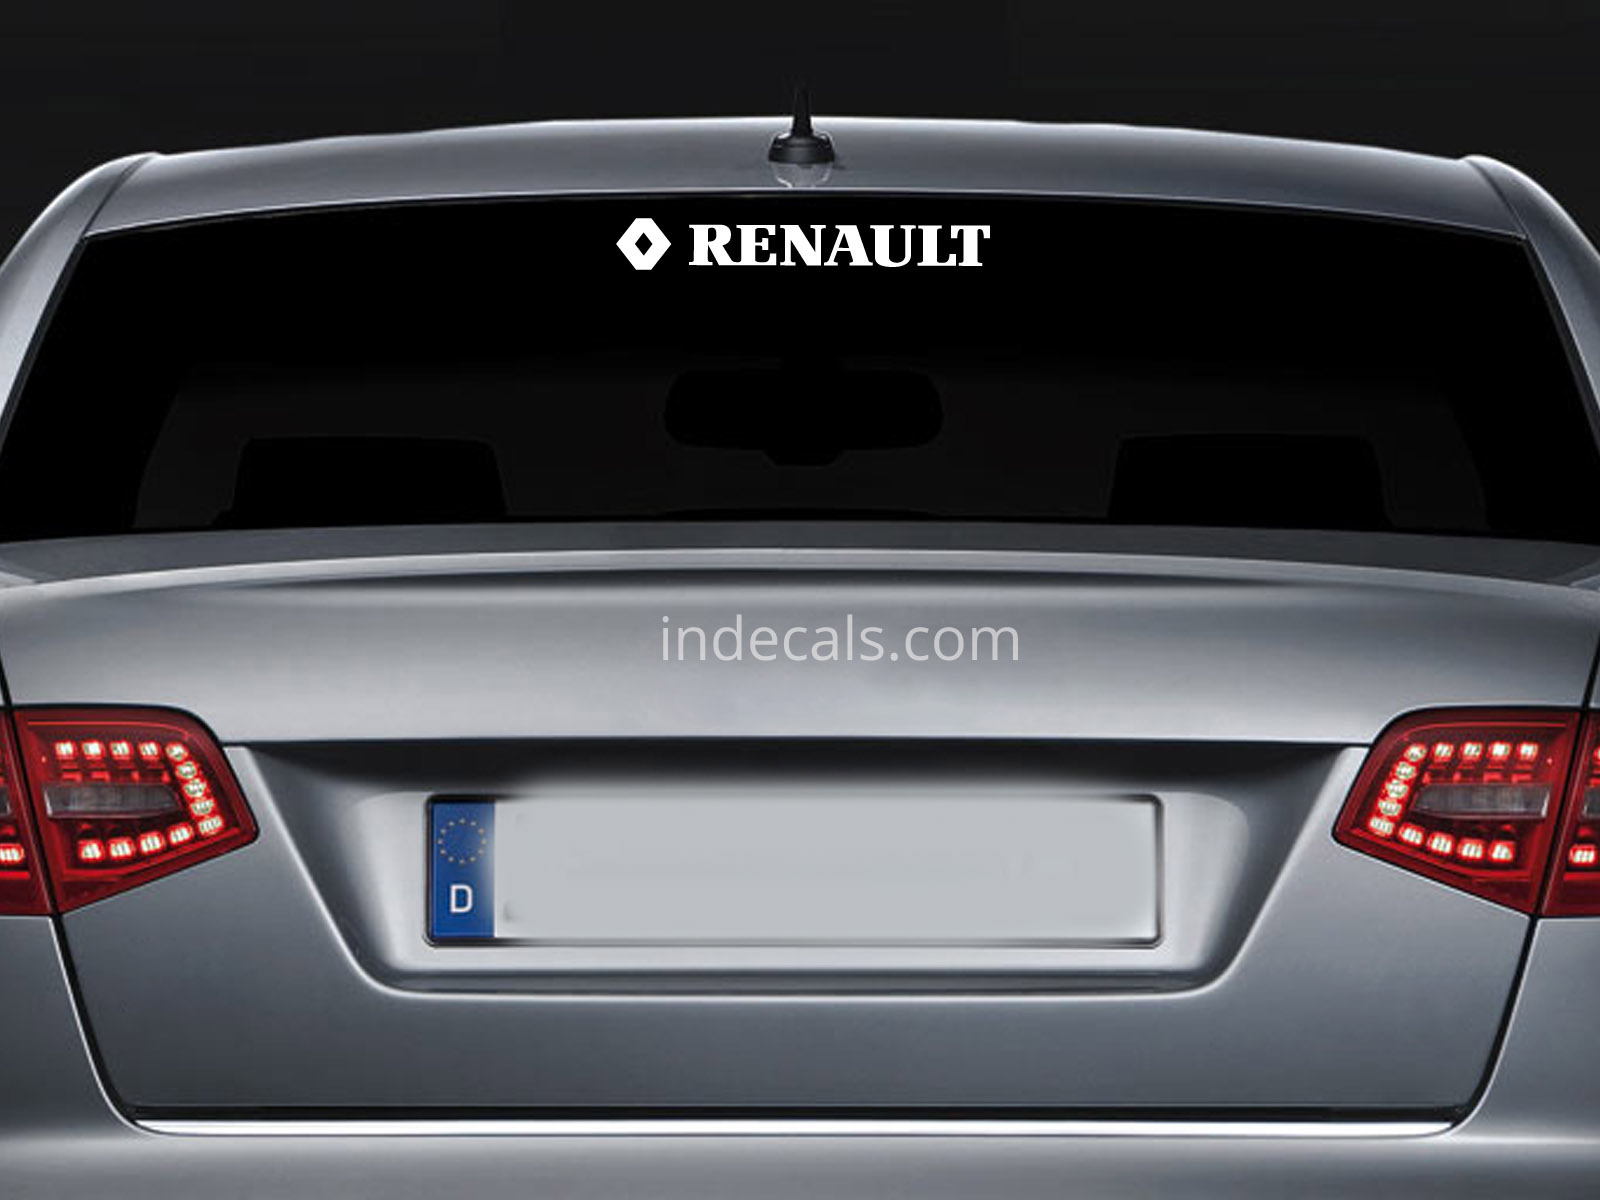 1 x Renault Sticker for Windshield or Back Window - White